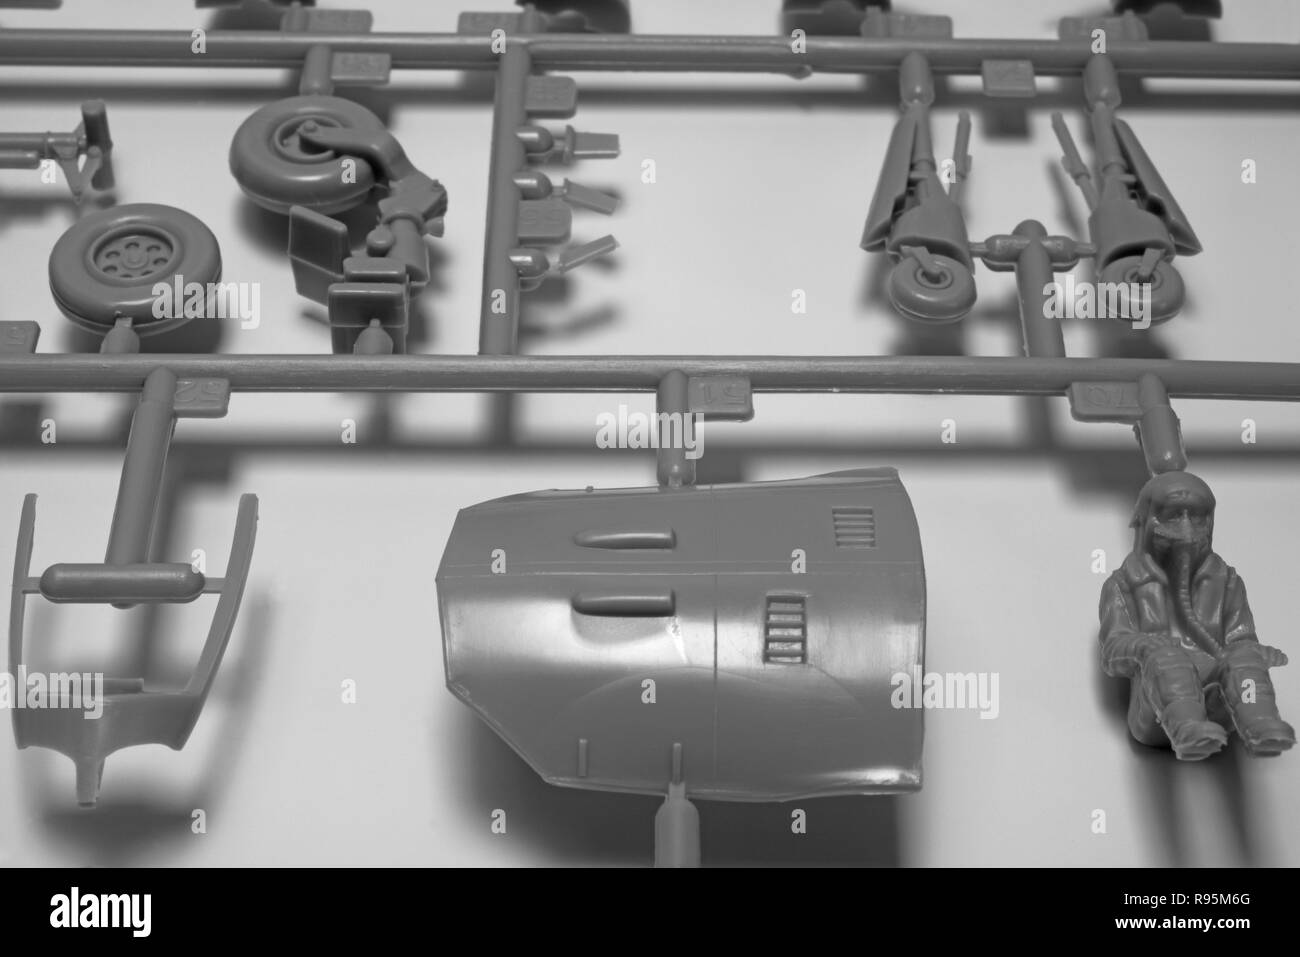 Tamiya 1/48 scale model Sea Harrier parts - Stock Image